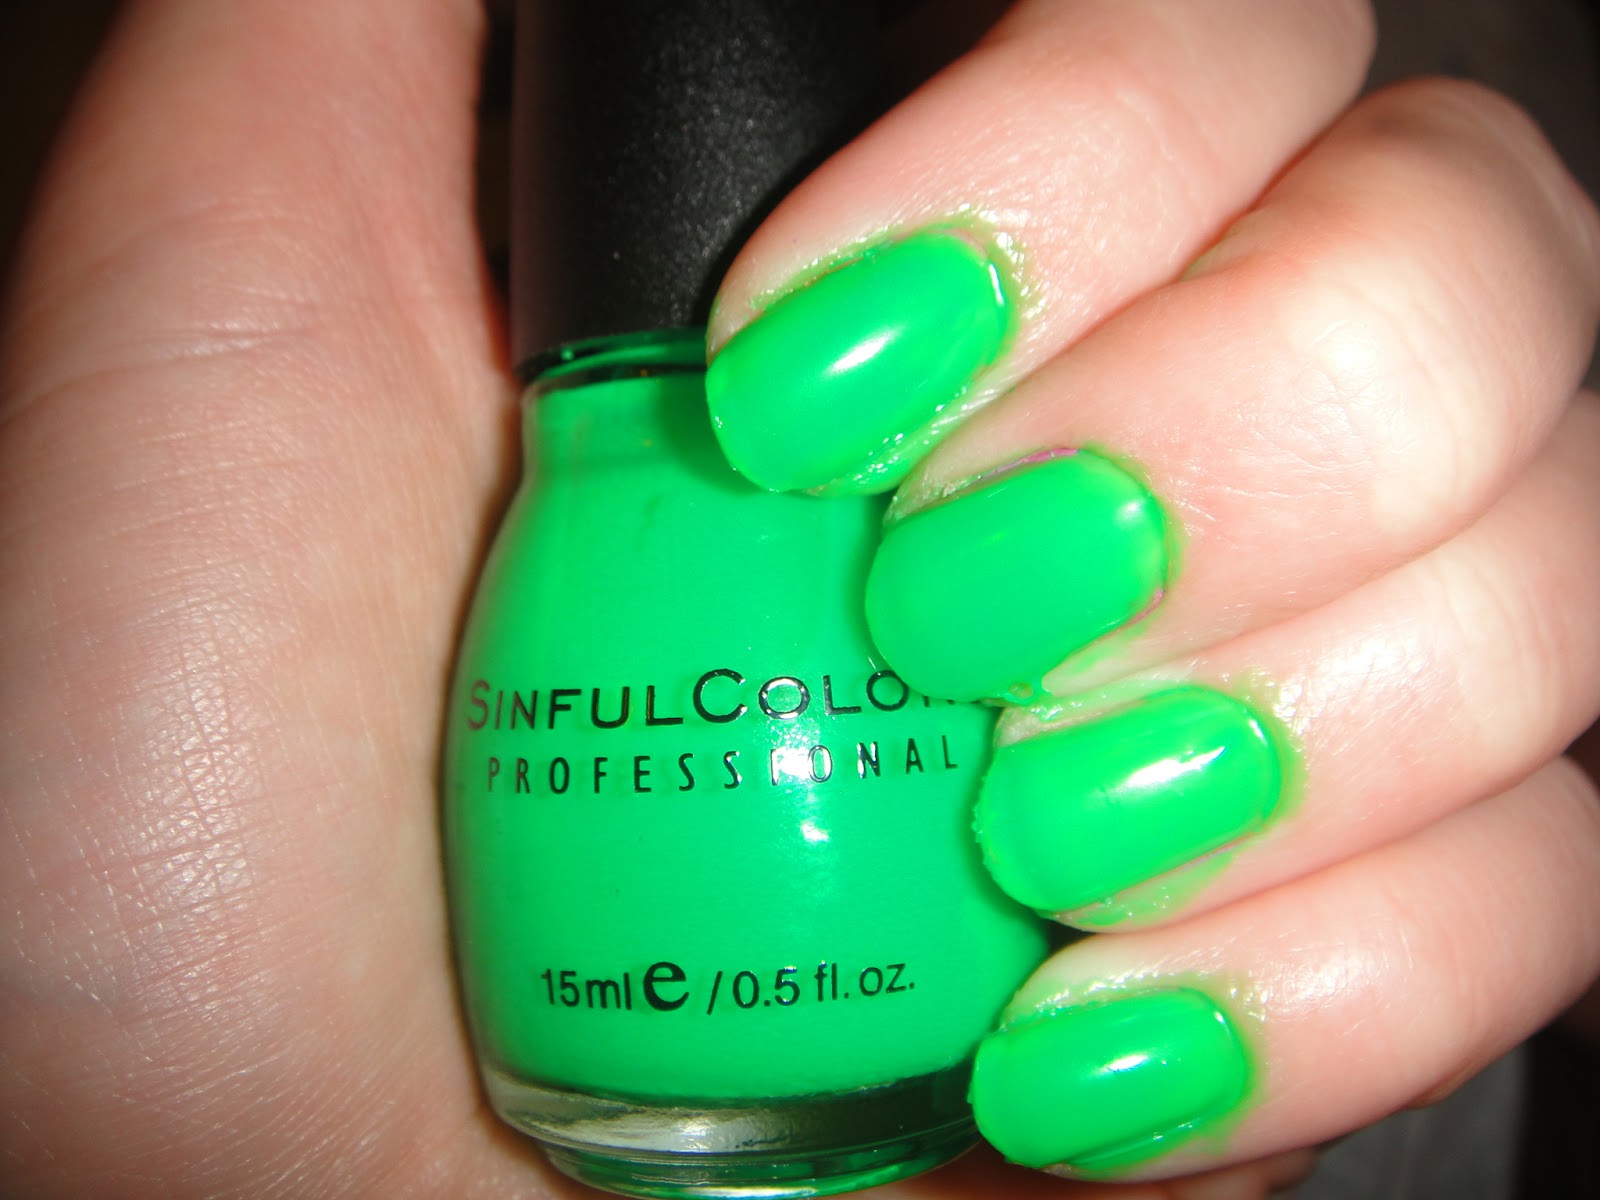 Sinful Colors Irish Green Review